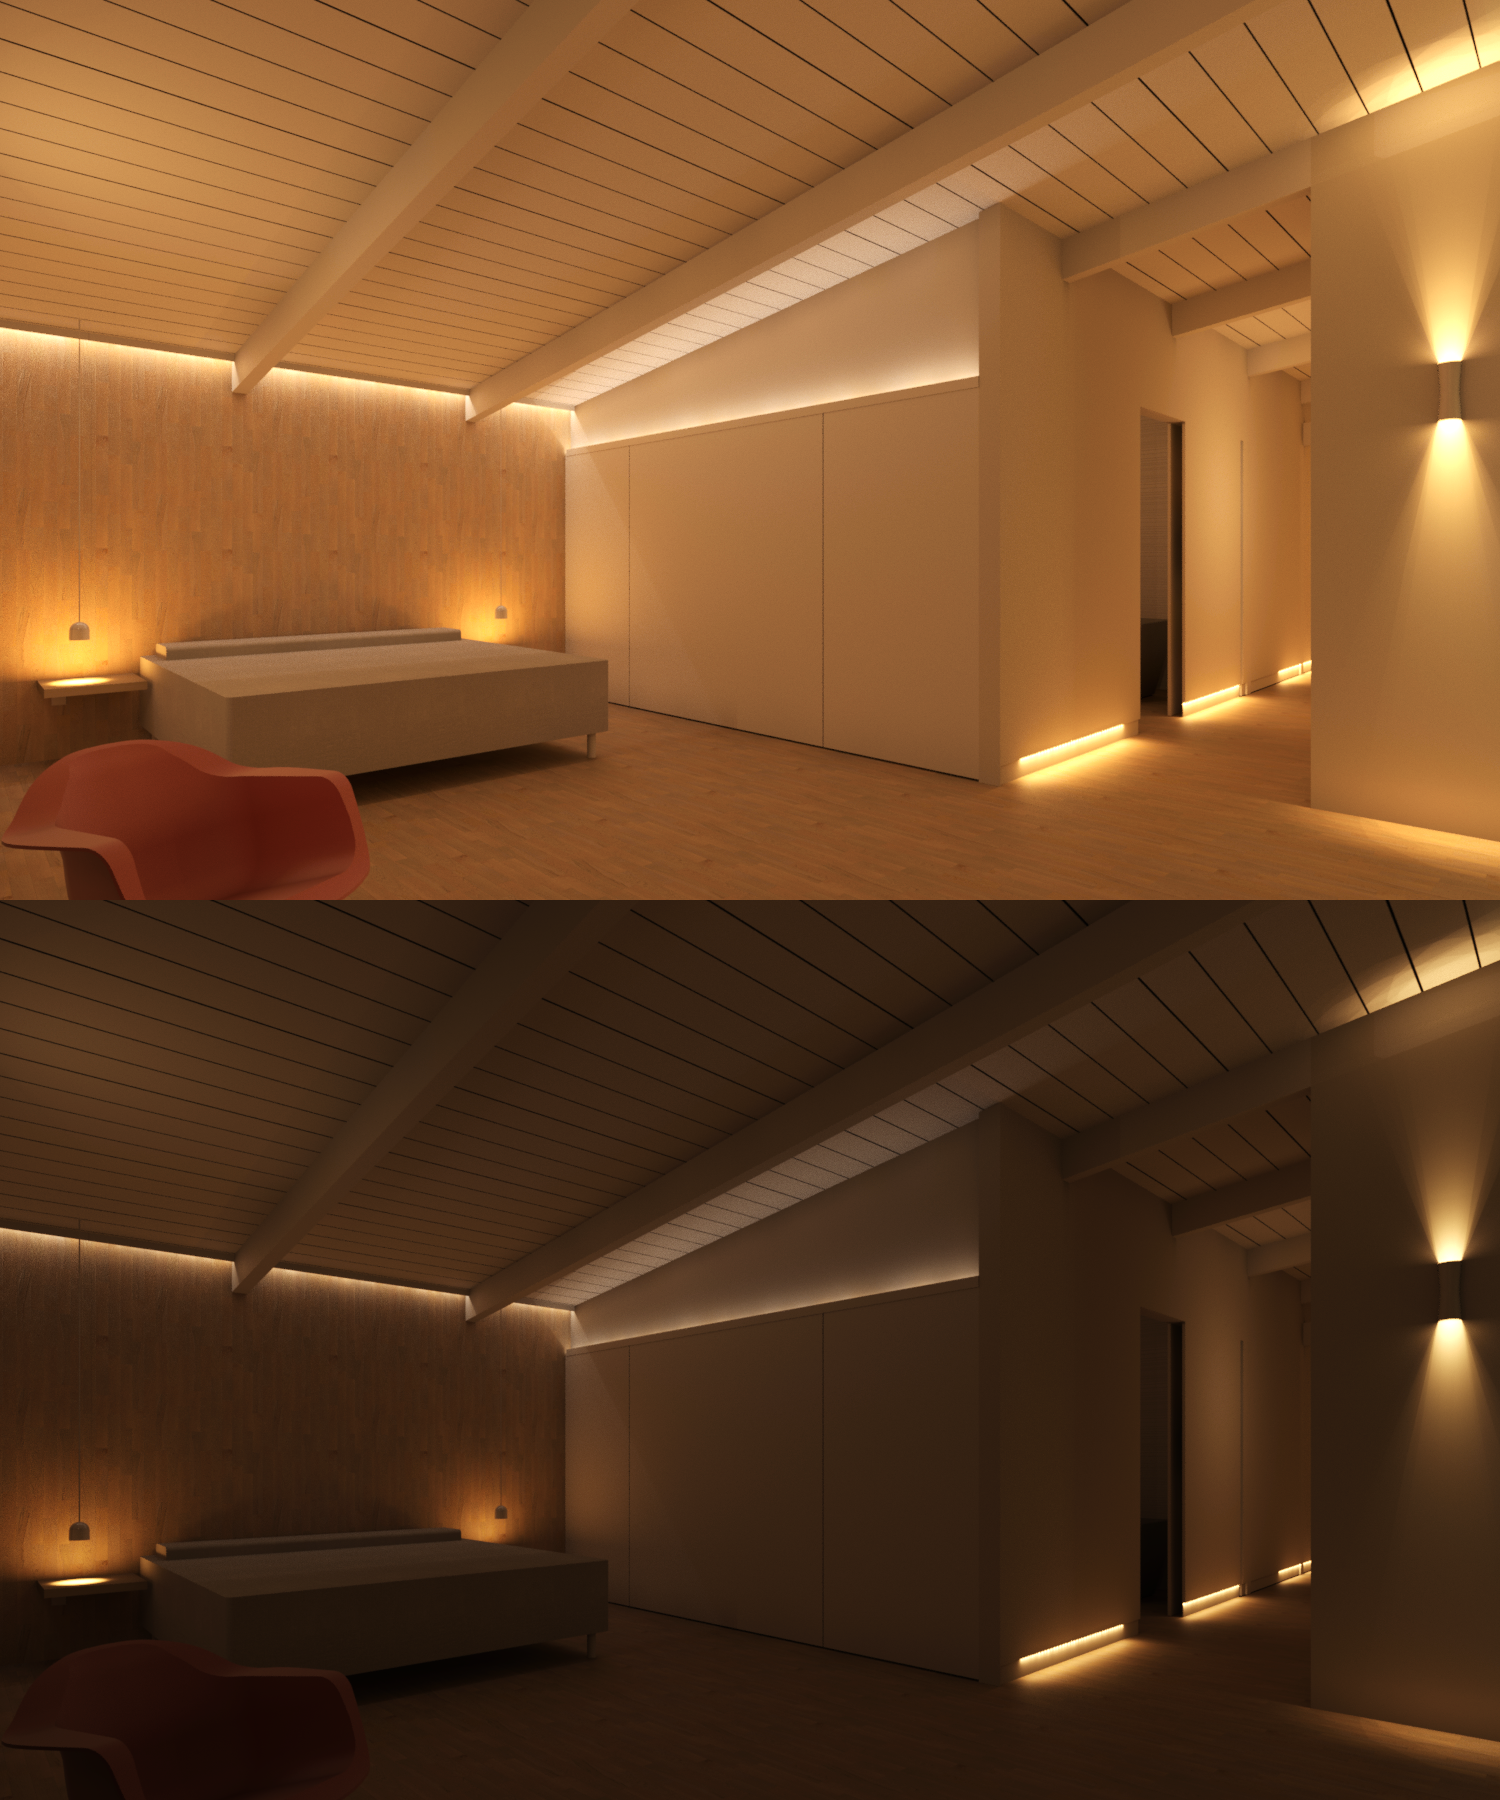 French-Meyers_3D_View_-_Master_Bedroom_from_outside_corner_Lighting.png